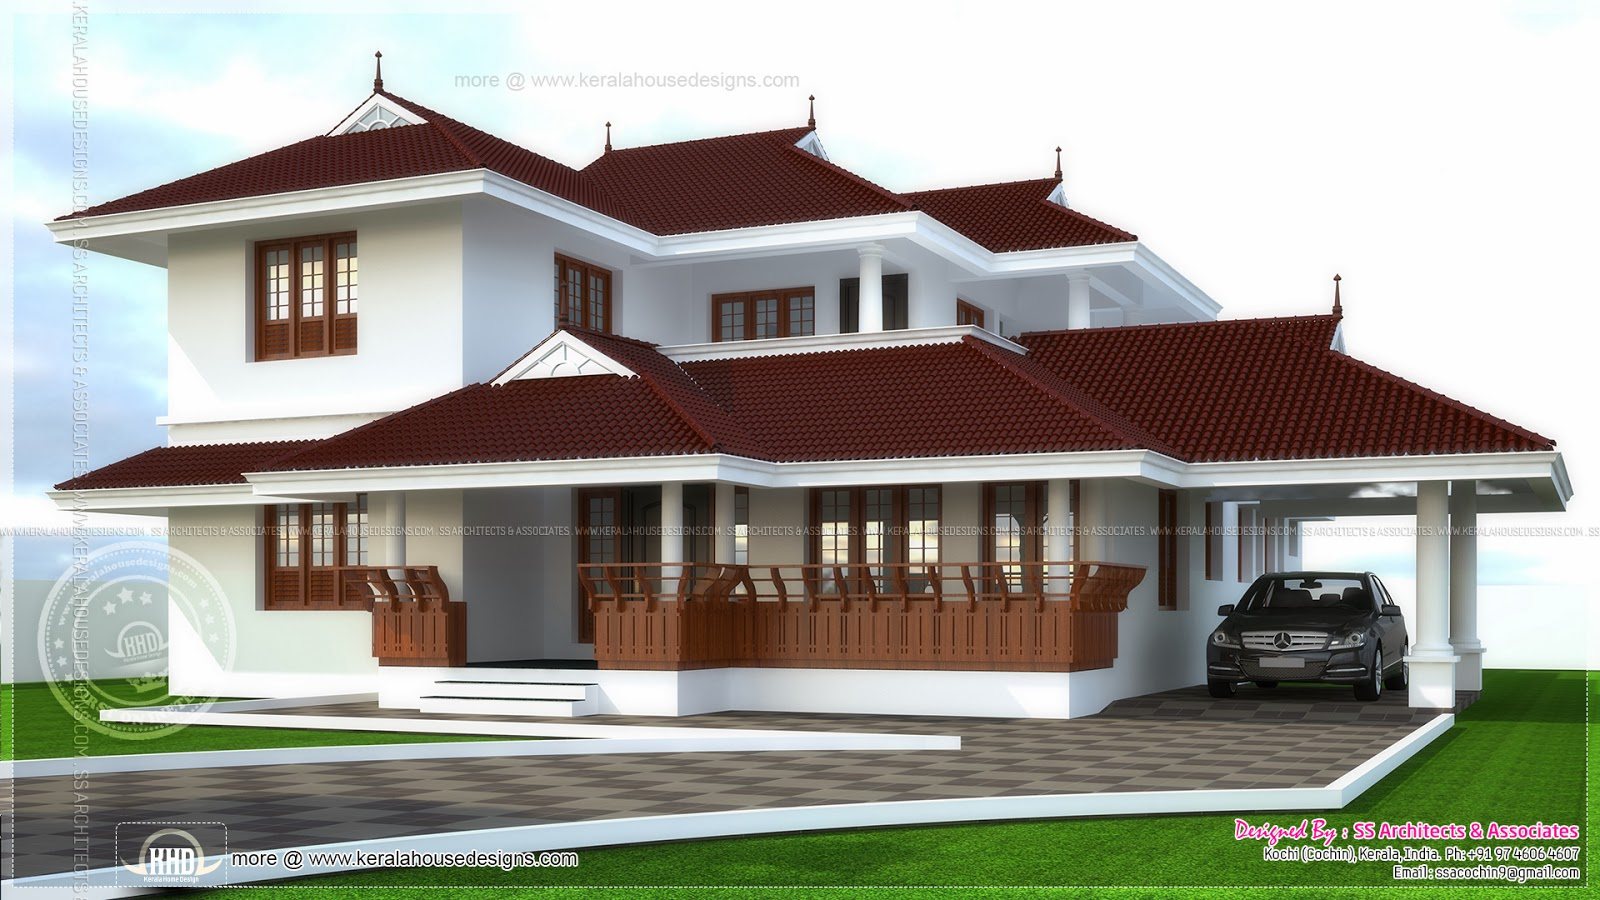 4 bedroom traditional kerala house design for Four bedroom kerala house plans